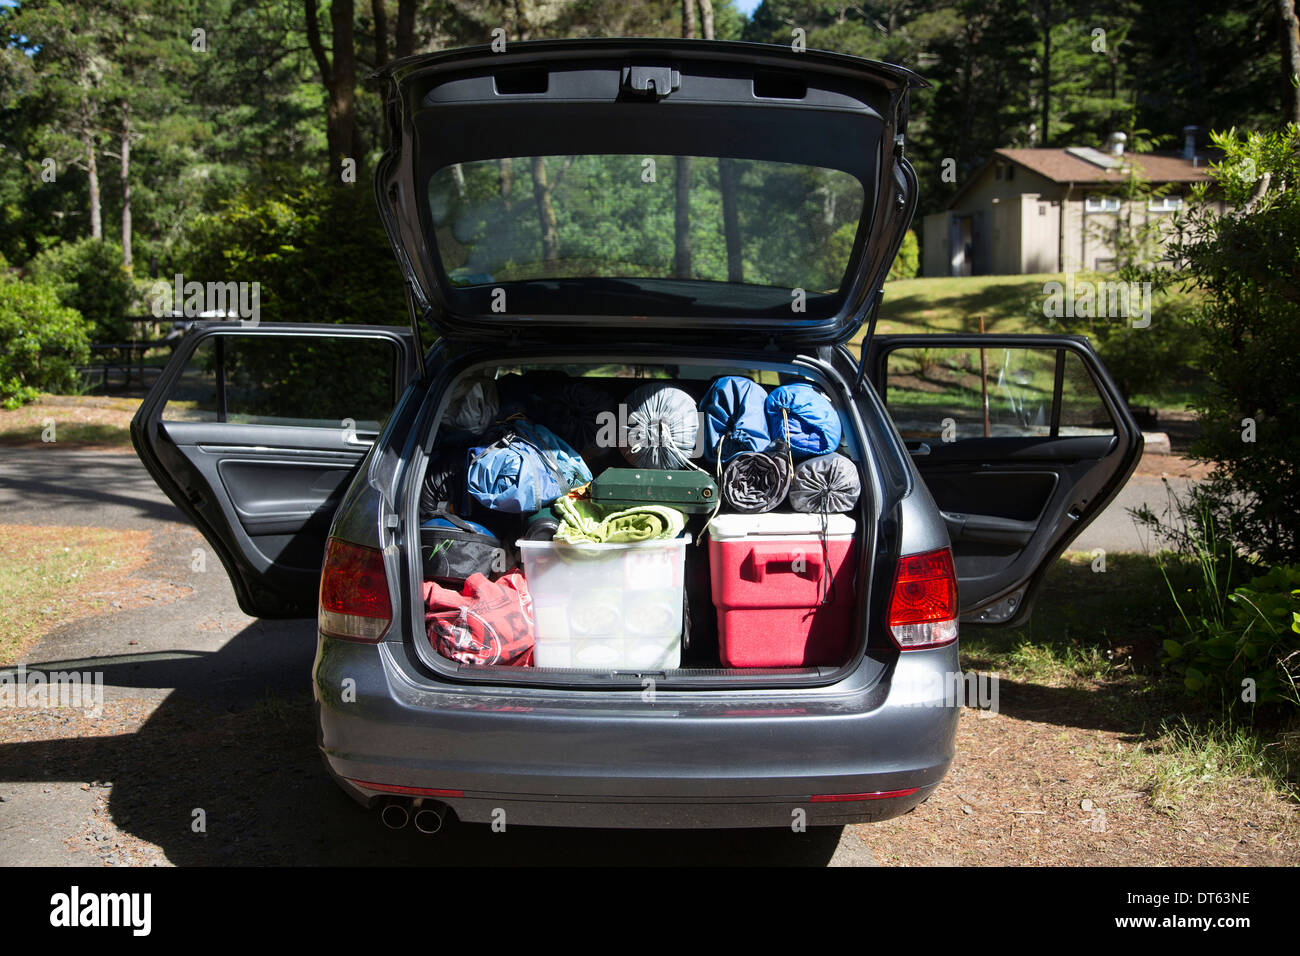 Car boot packed full with camping equipment - Stock Image